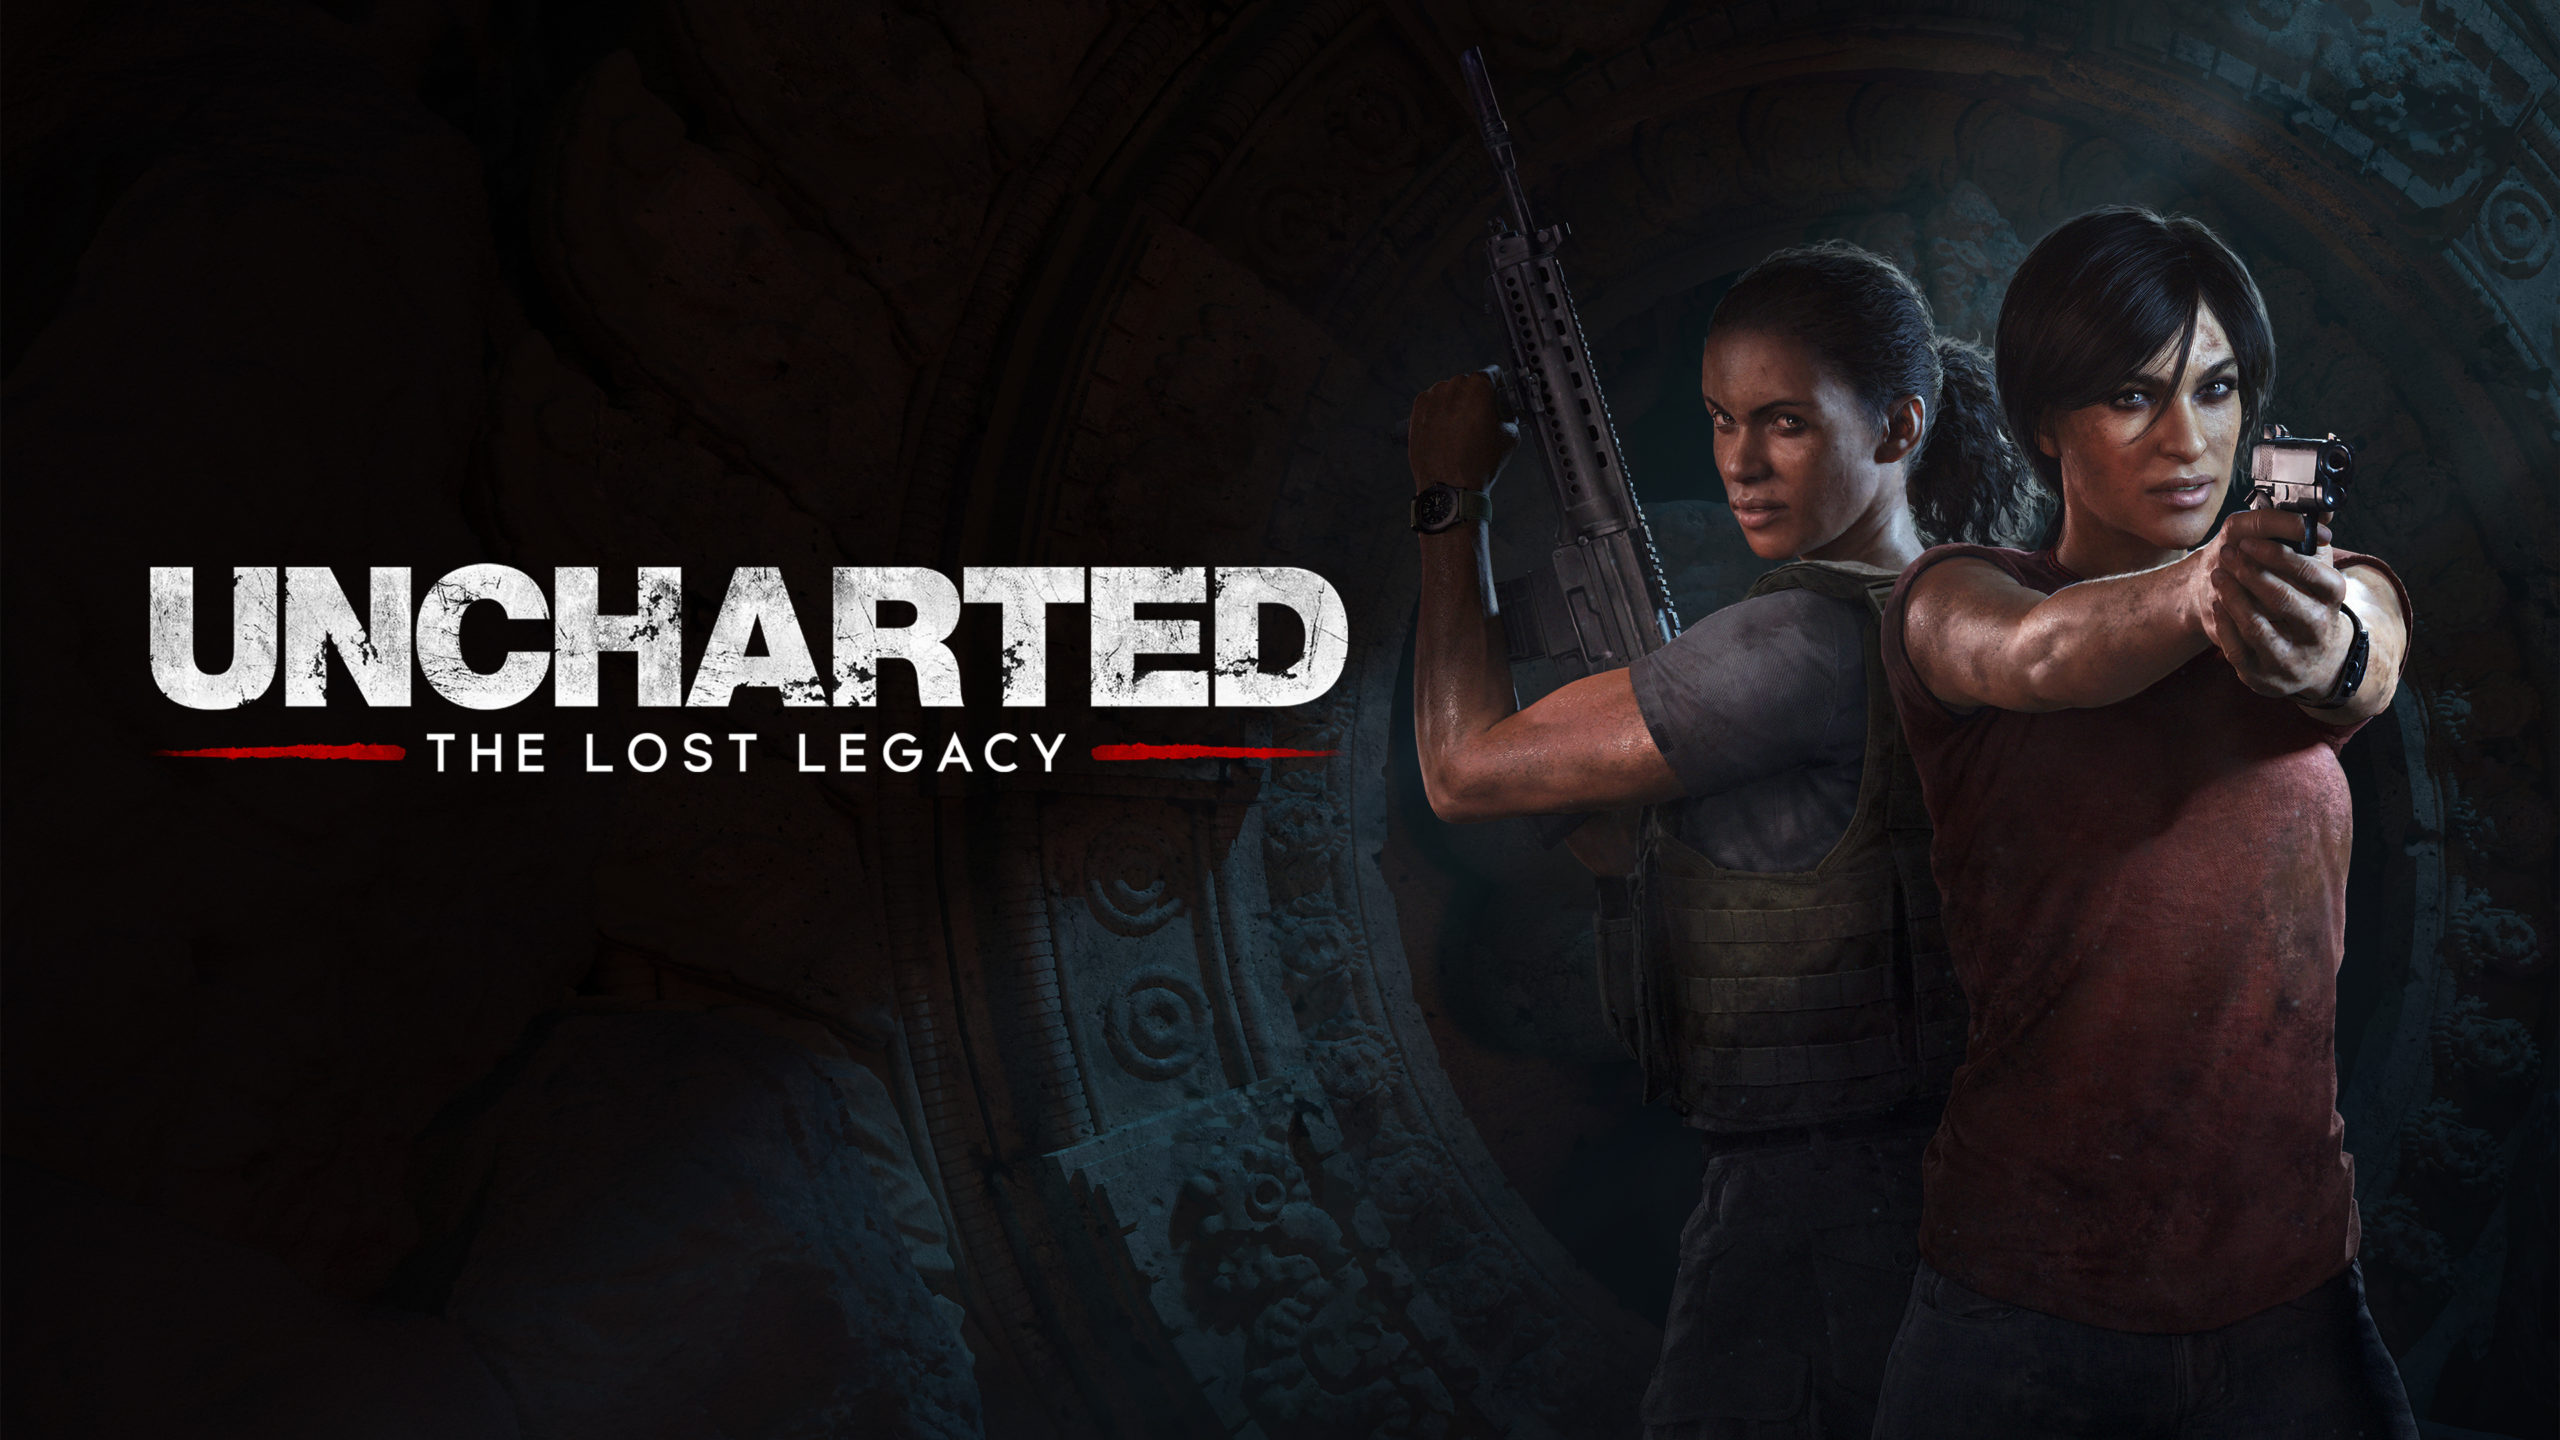 L'extension d'Uncharted 4: THE LOST LEGACY prévue pour 2017!